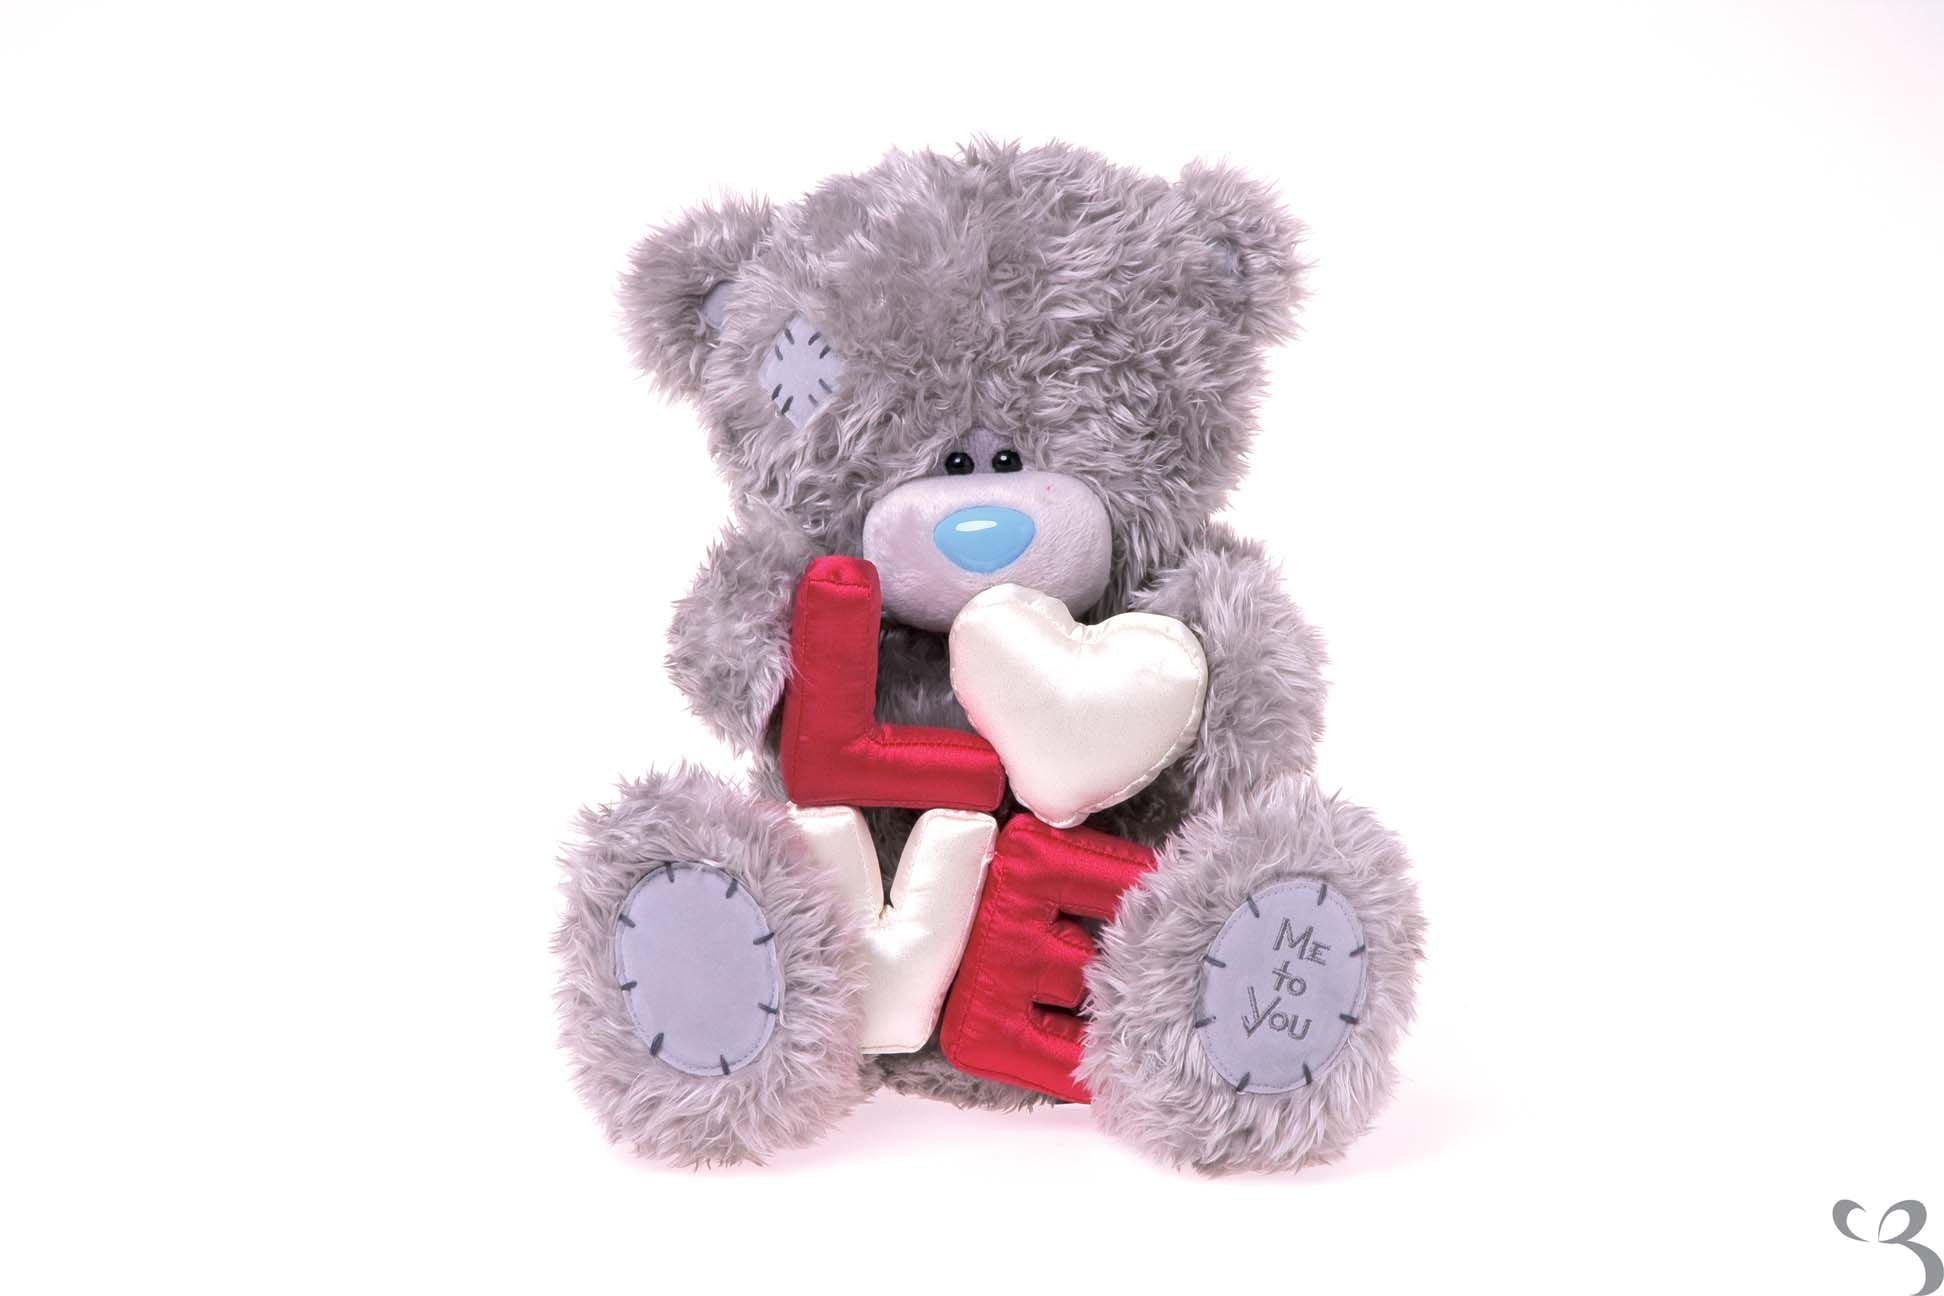 "Me to You Bear - 12"" Love - Padded letters - Tatty Teddy ..."